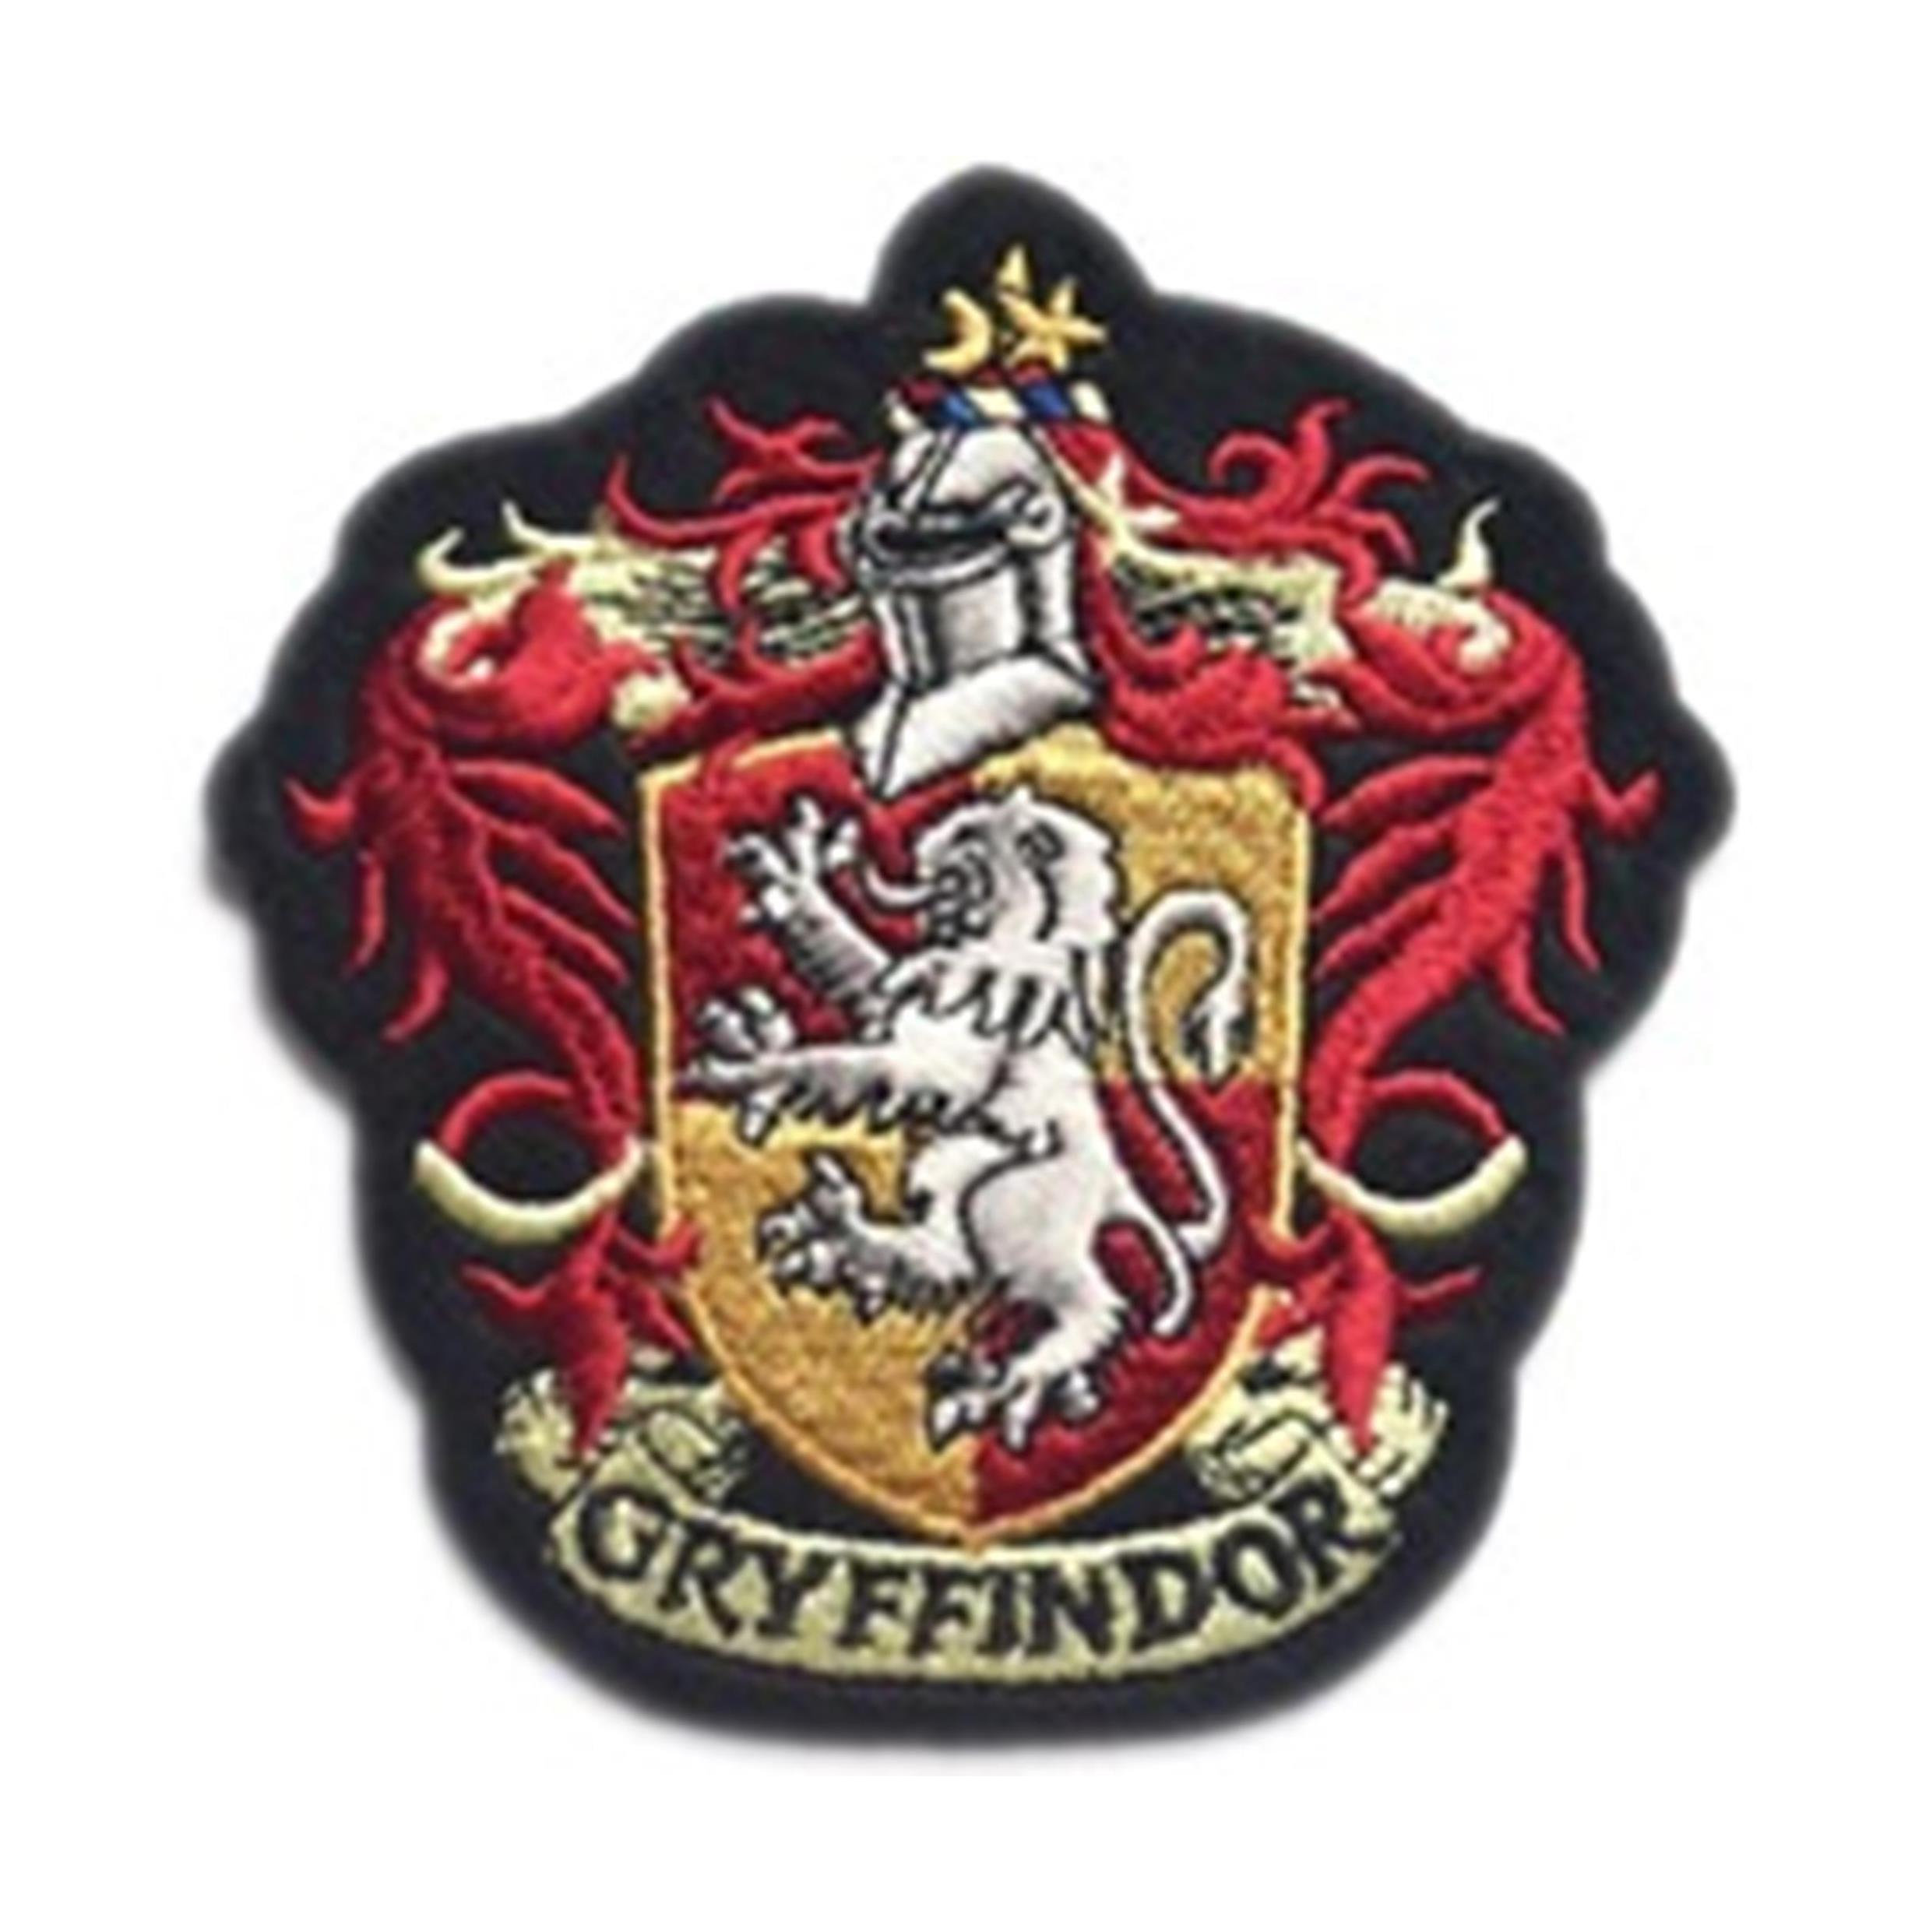 "Superheroes Gryffindor House Crest 4"" Embroidered Iron/Sew-on Applique Patch"